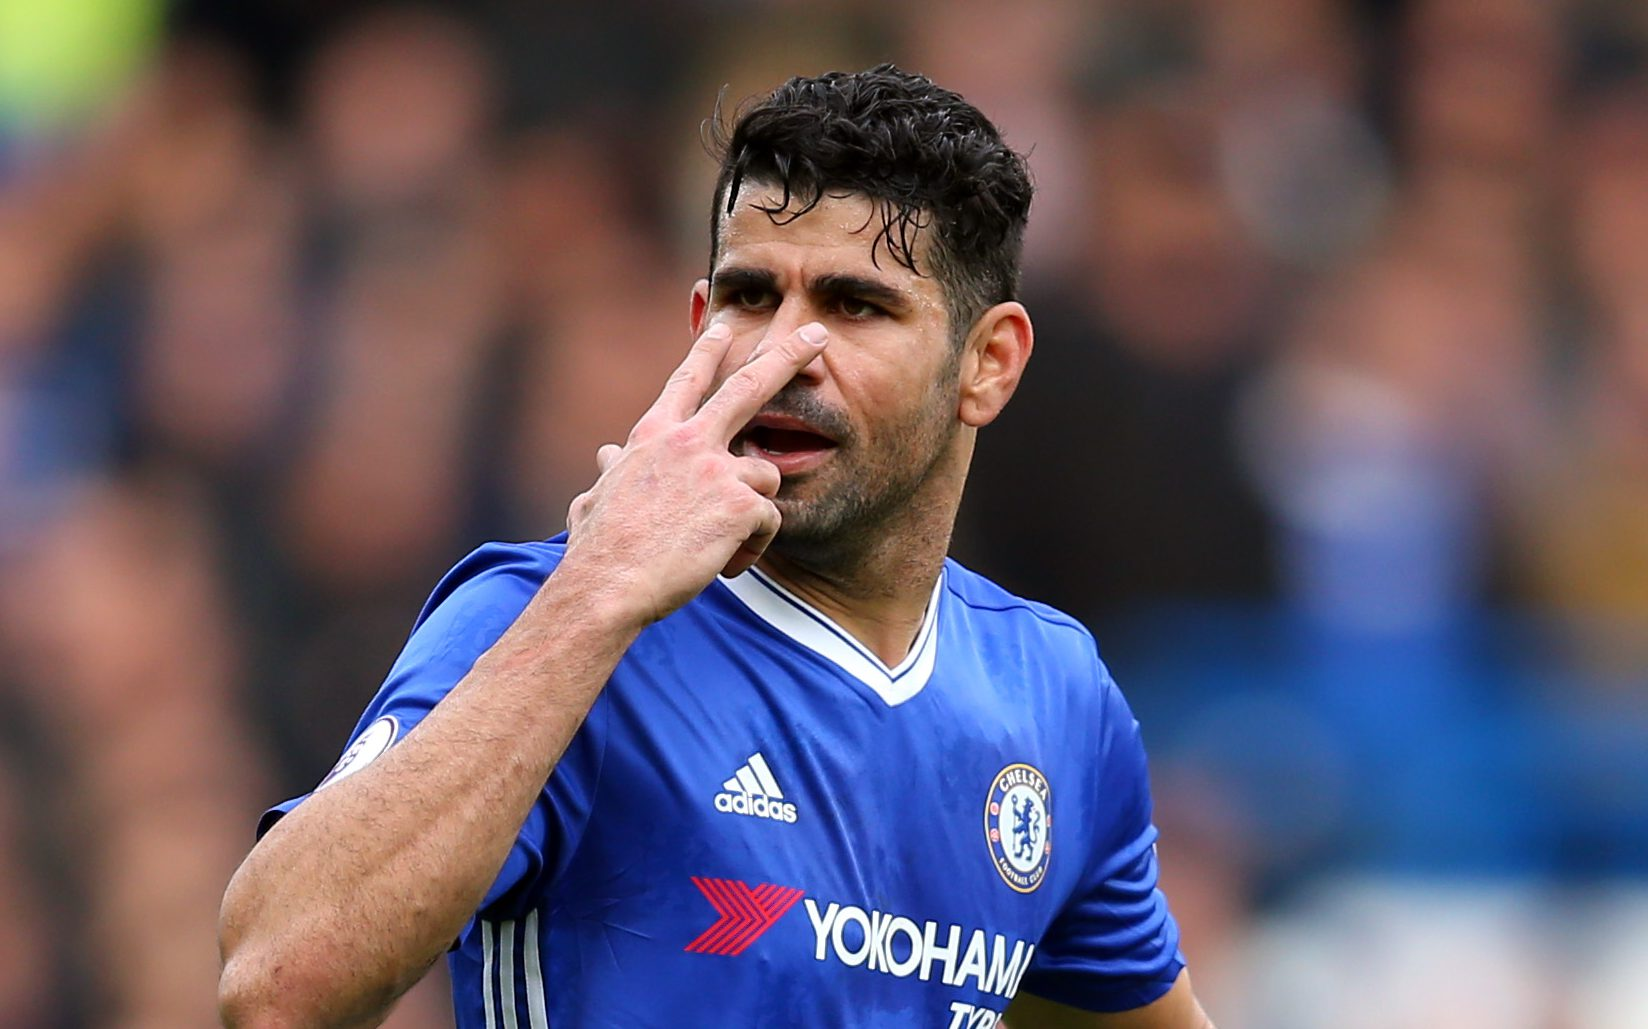 LONDON, ENGLAND - FEBRUARY 04: Diego Costa of Chelsea during the Premier League match between Chelsea and Arsenal at Stamford Bridge on February 4, 2017 in London, England. (Photo by Catherine Ivill - AMA/Getty Images)